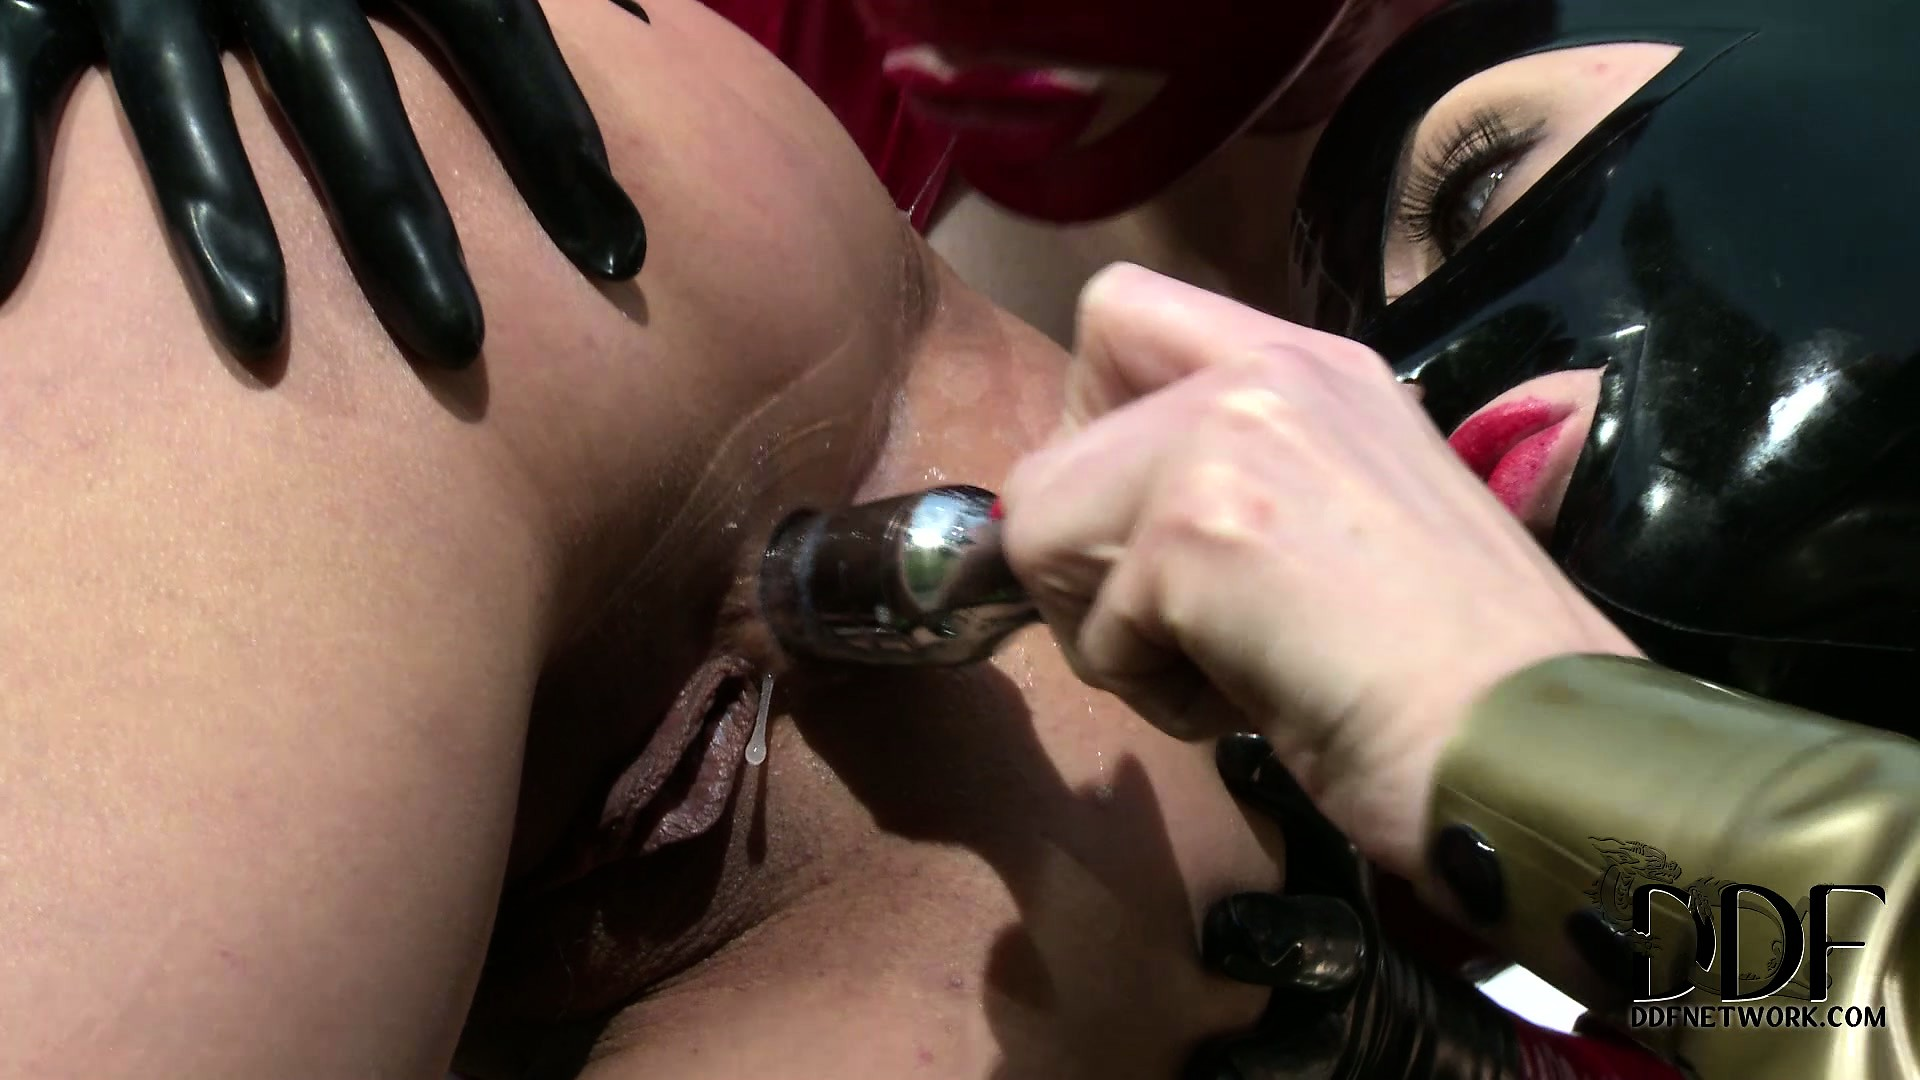 Porn Tube of Latex Clad Mistress And Slave Outside Fisting The Slave's Ass